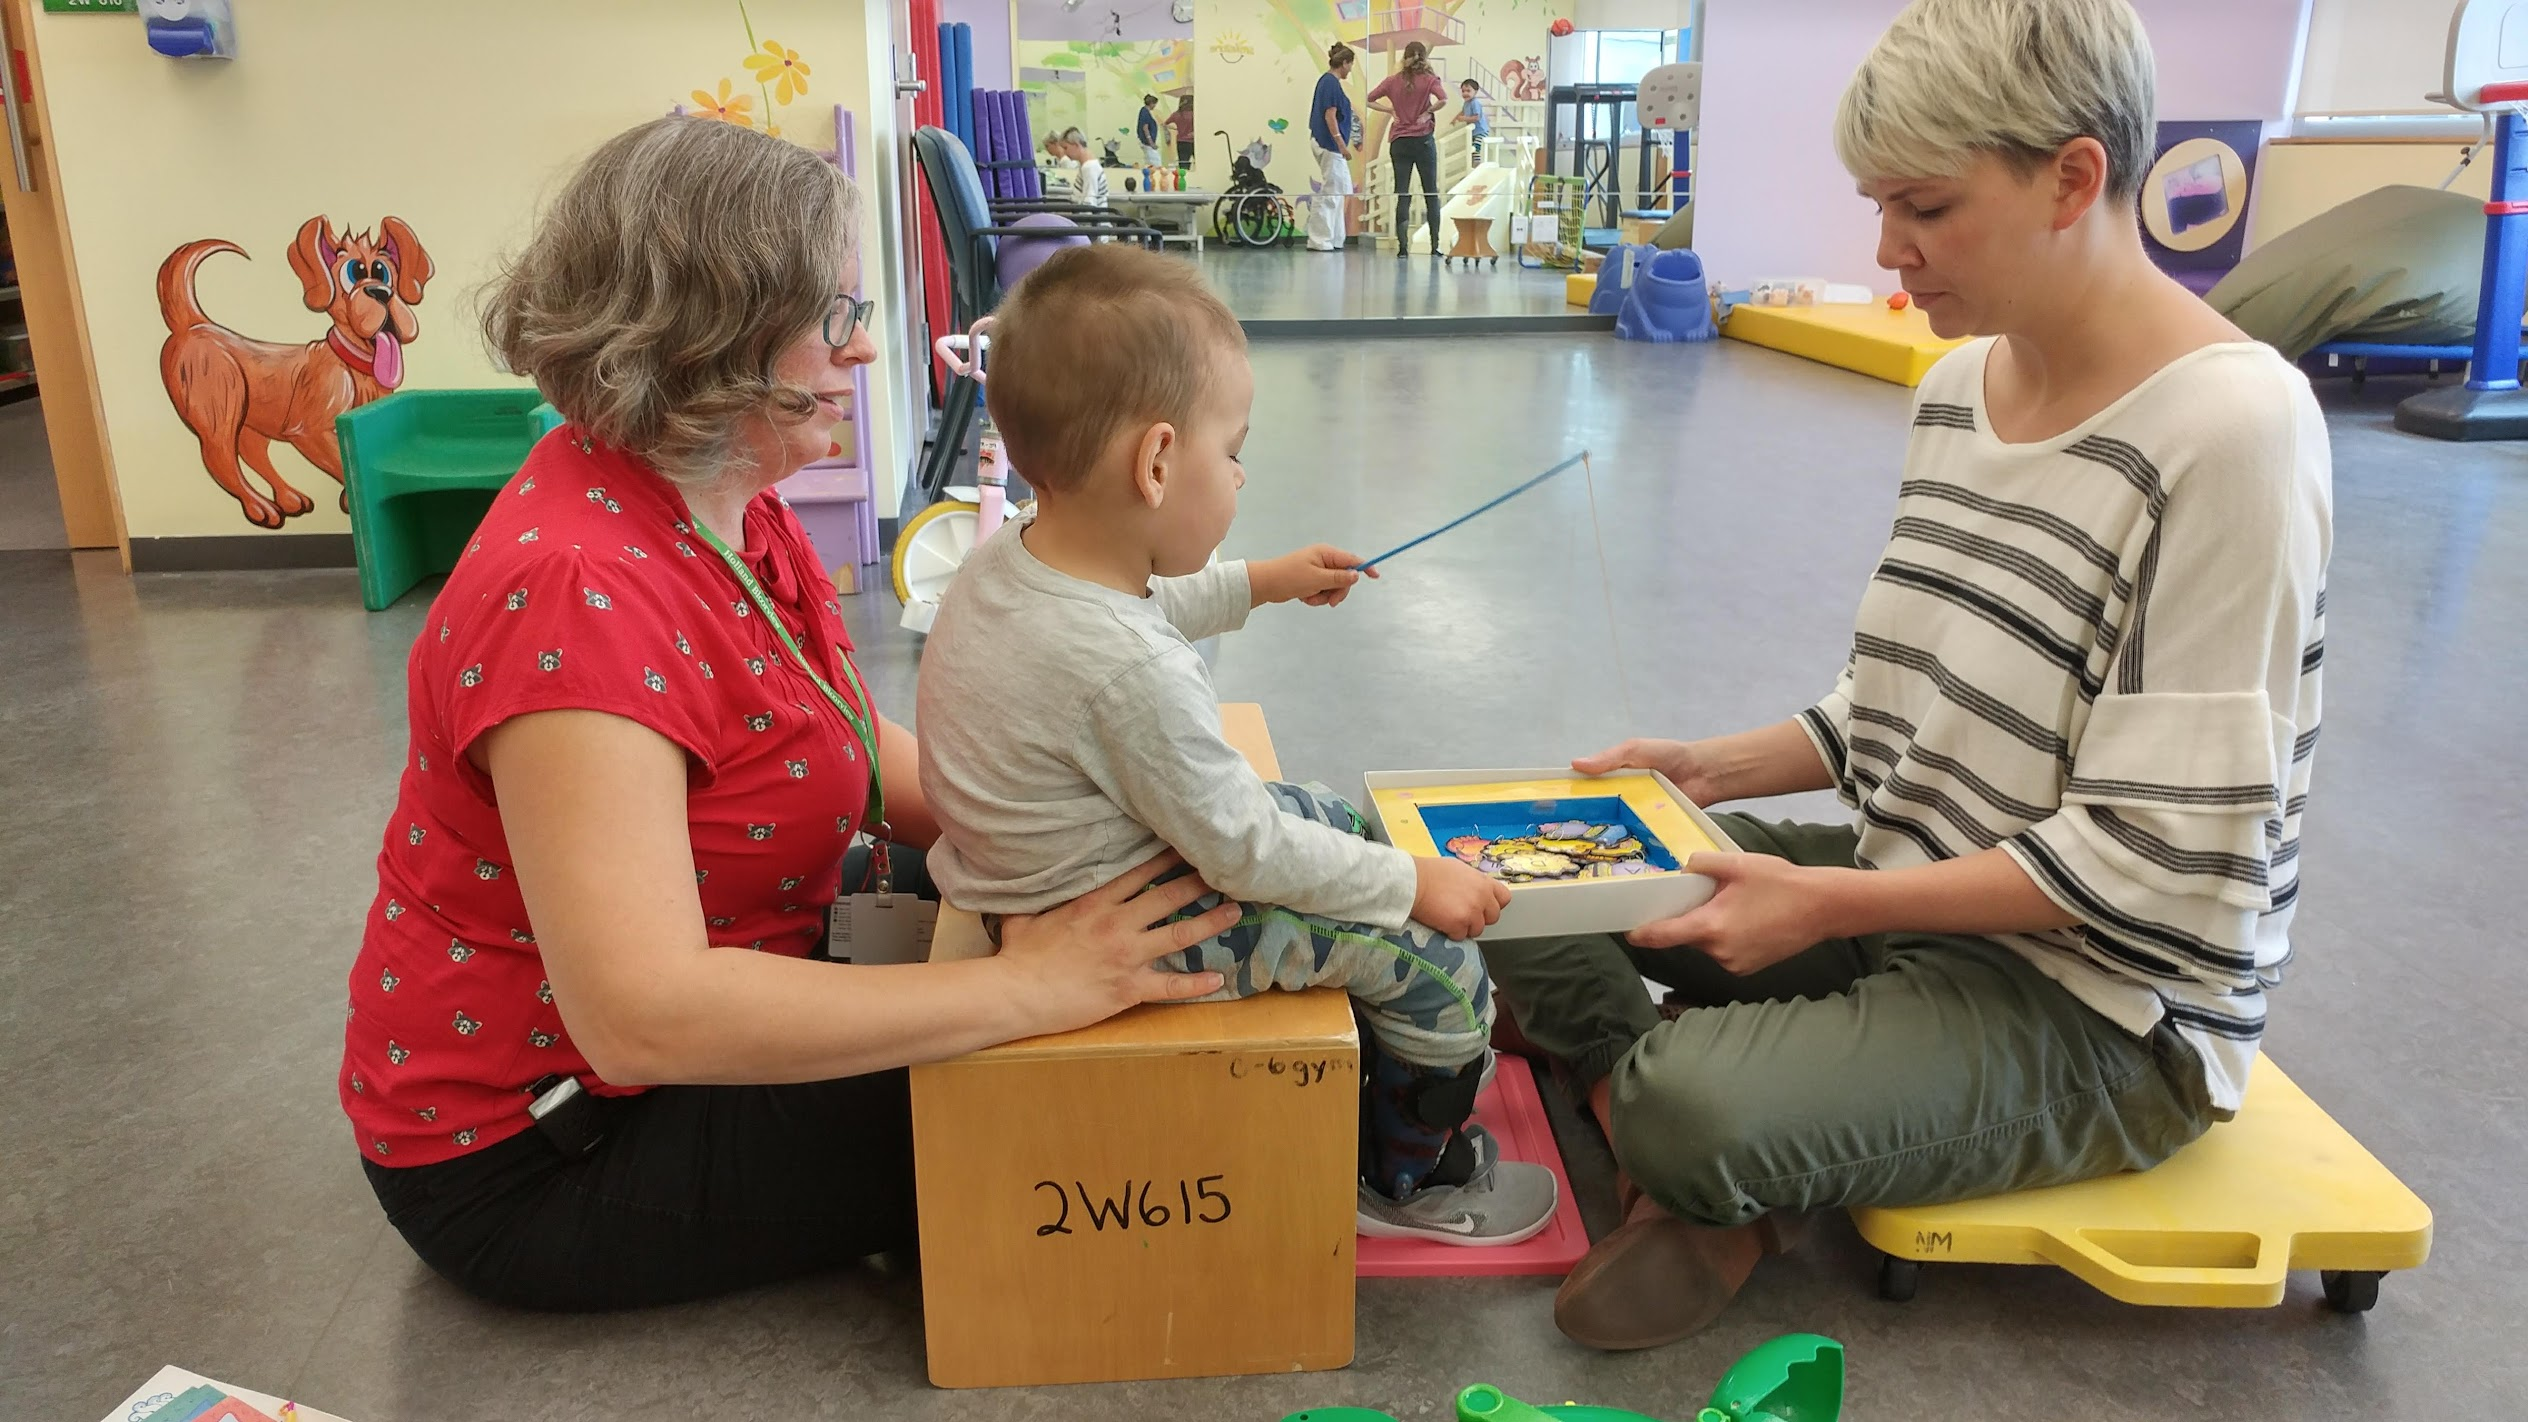 Noah, a little boy, is sitting on a wooden block with a physical therapist supporting his back. Another PT is holding a box while Noah uses a stick to go fishing for items in the box.